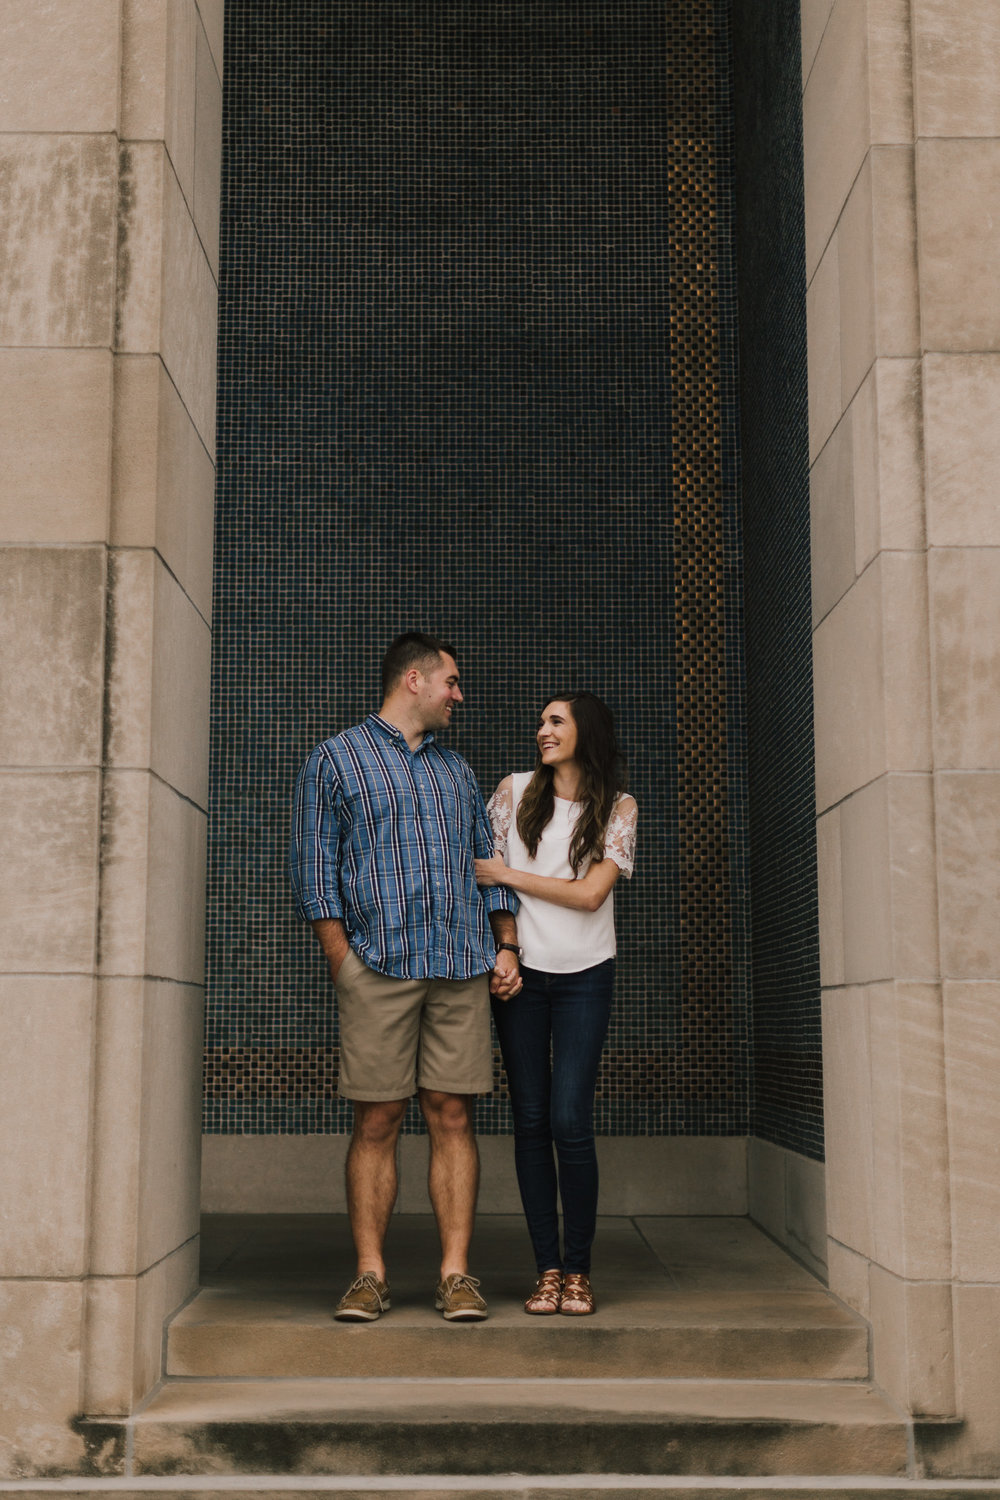 alyssa barletter photography emperial brewery engagement session downtown kansas city kc crossroads -3.jpg